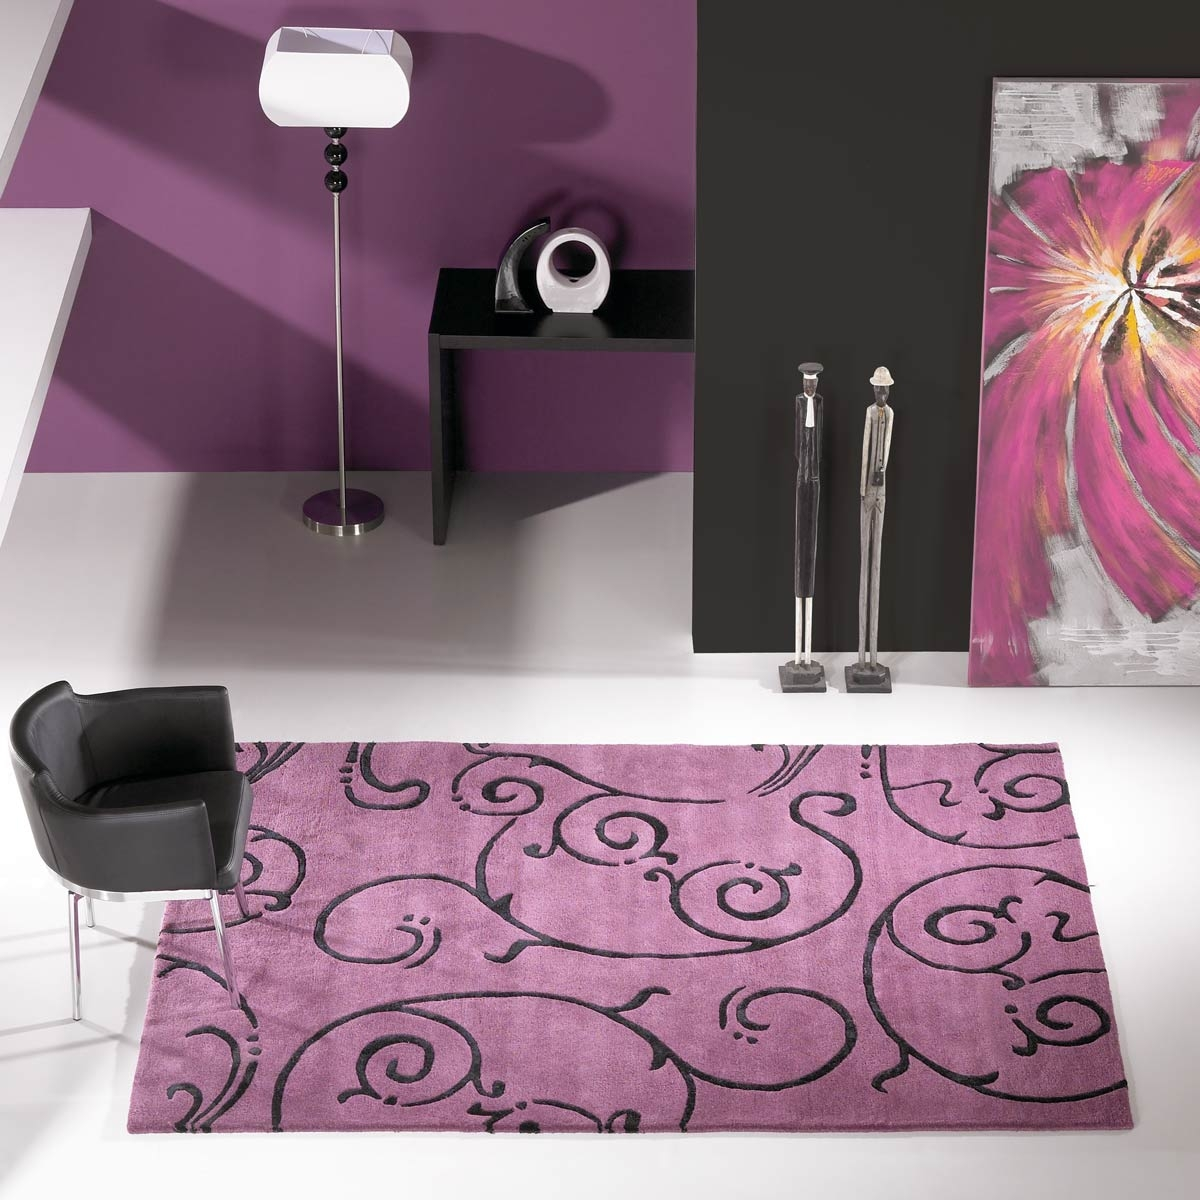 tapis salon gris violet avec des id es int ressantes pour la conception de la chambre. Black Bedroom Furniture Sets. Home Design Ideas